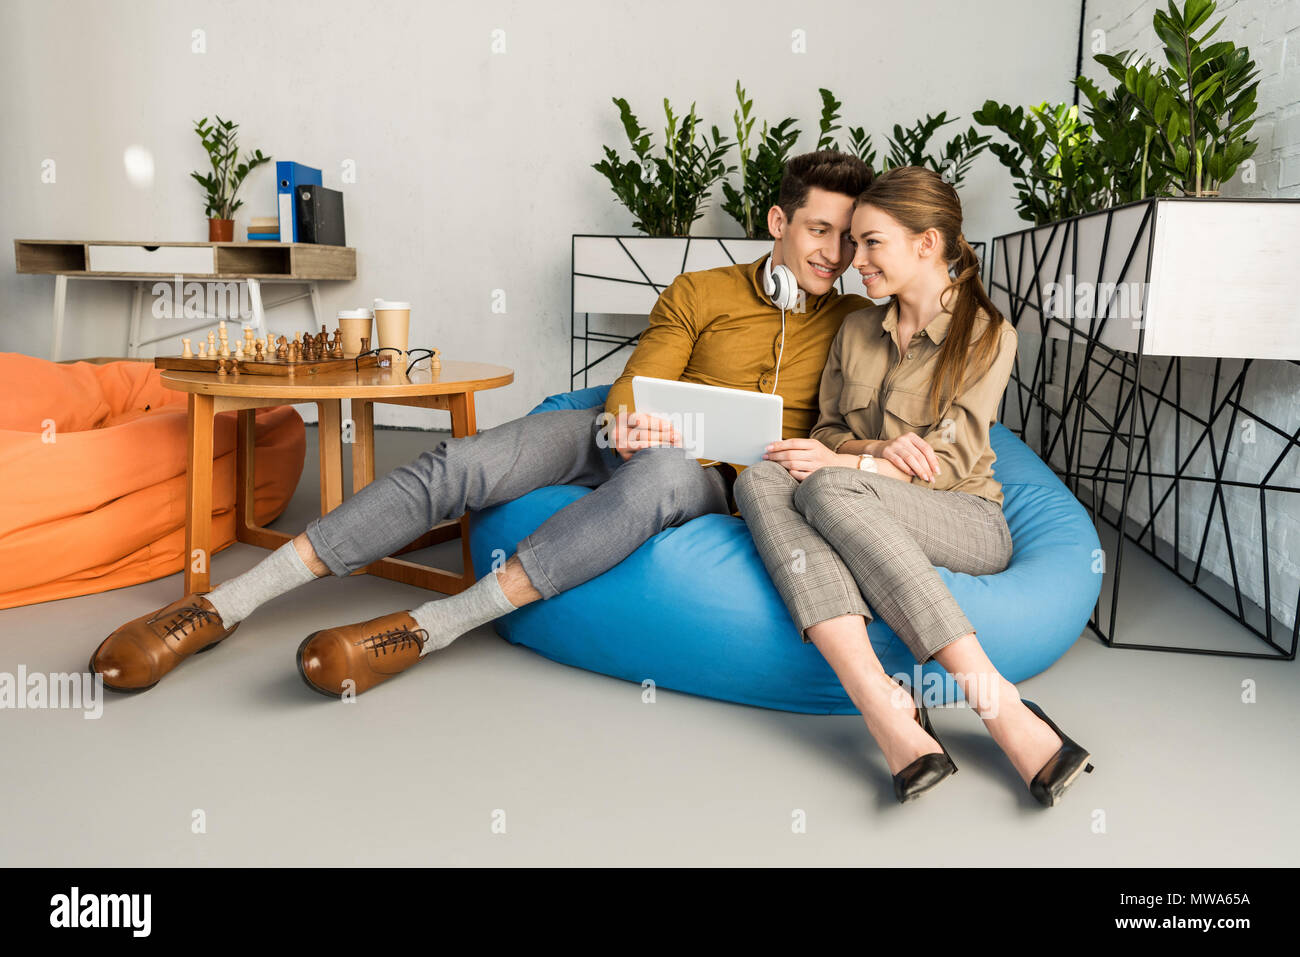 young couple cuddling using tablet together while sitting in bean bag - Stock Image